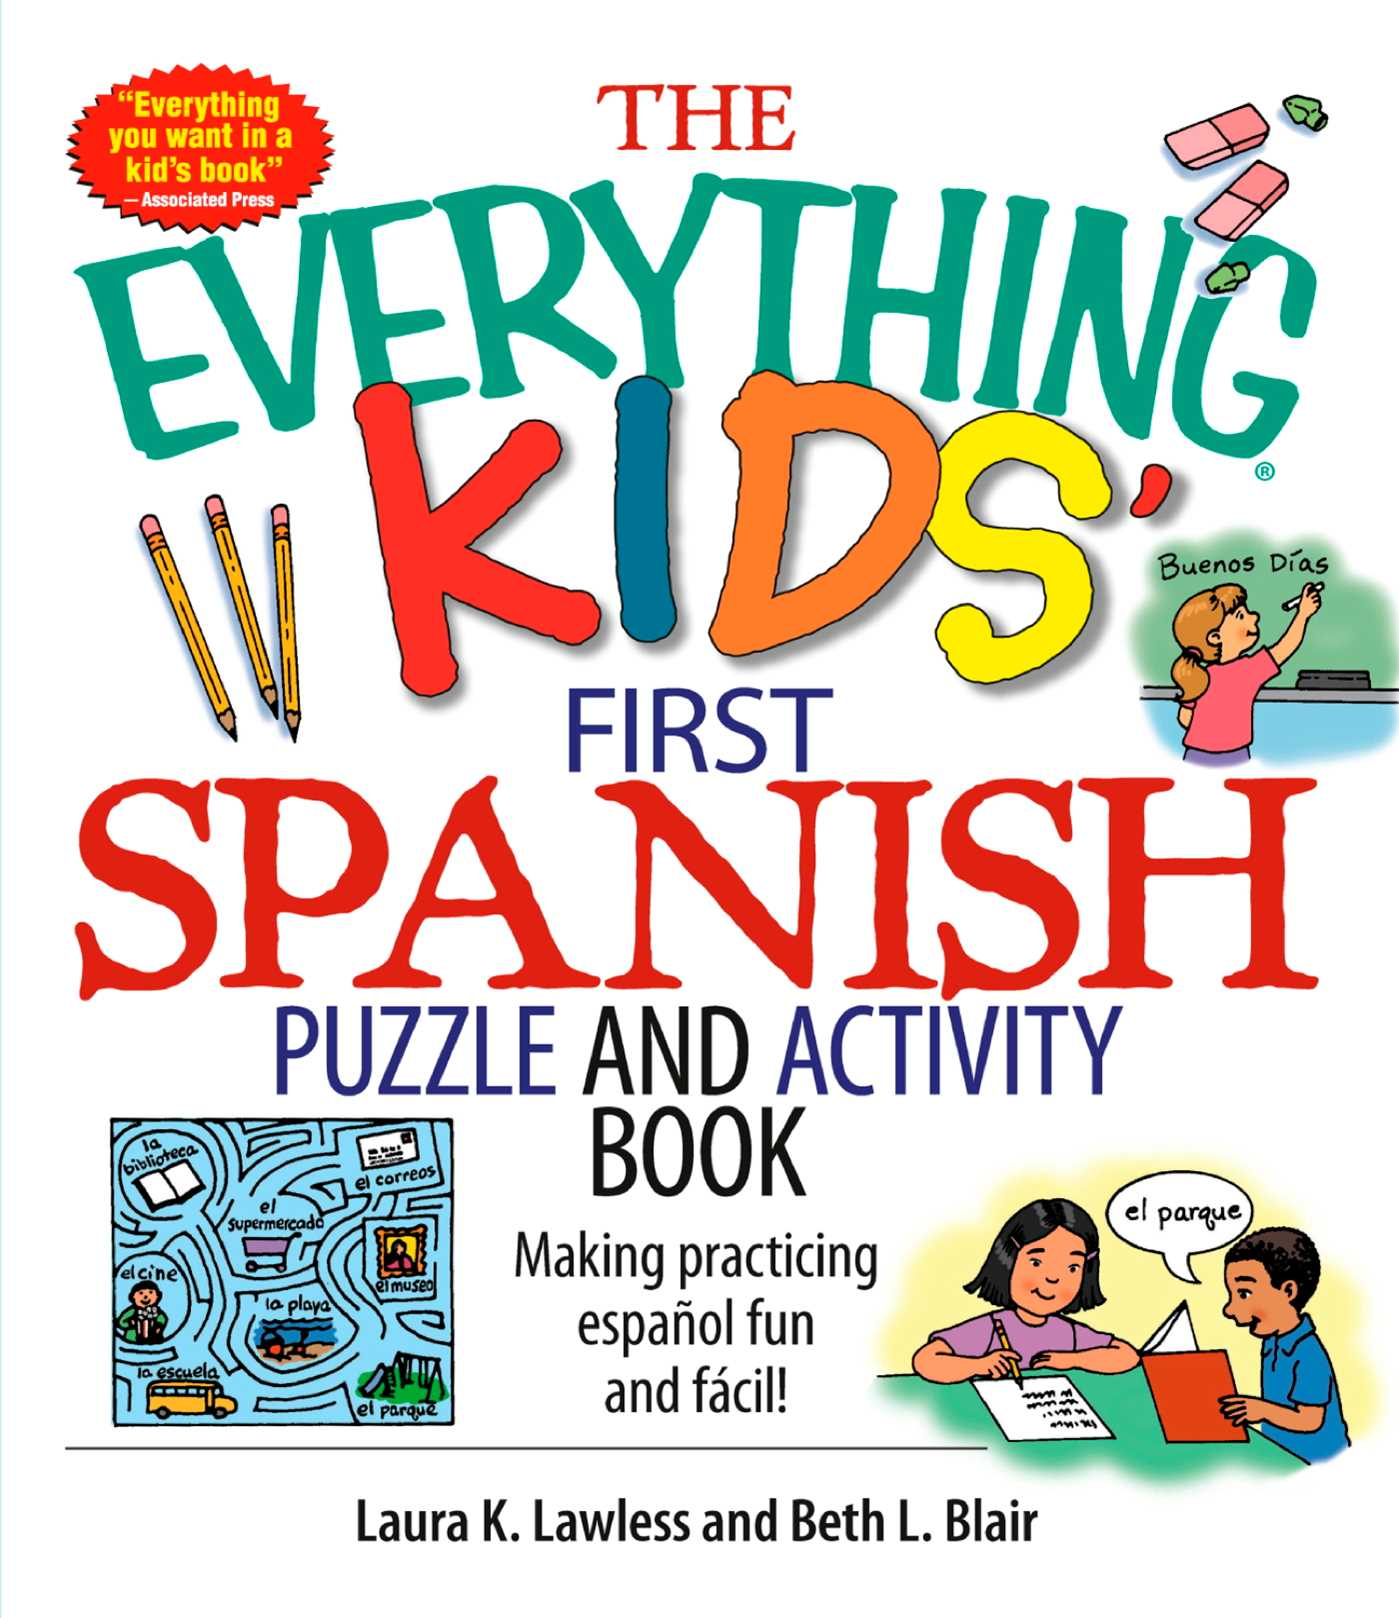 Spanish Learning Book